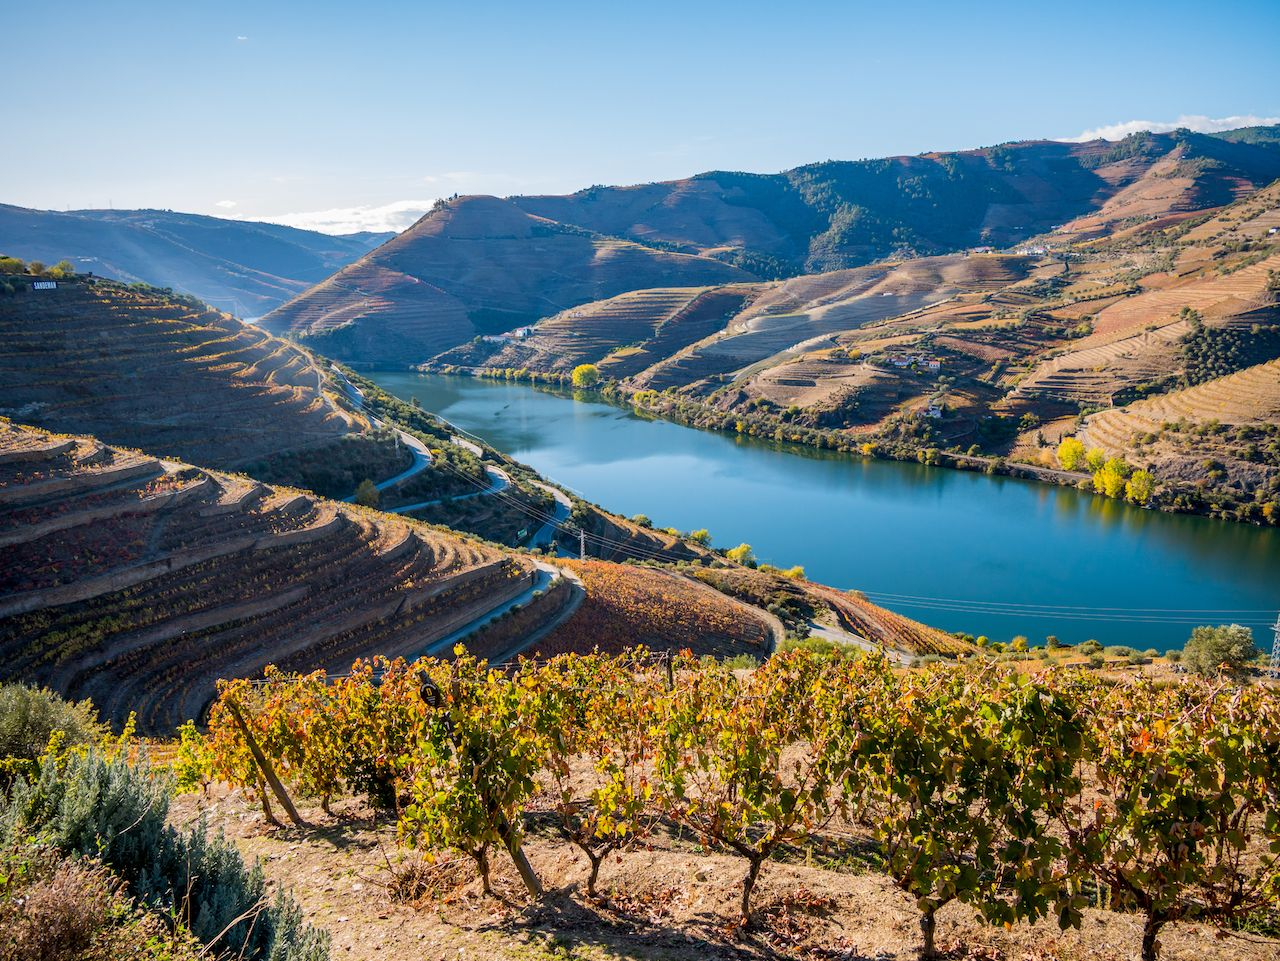 Douro river and vineyards in Portugal